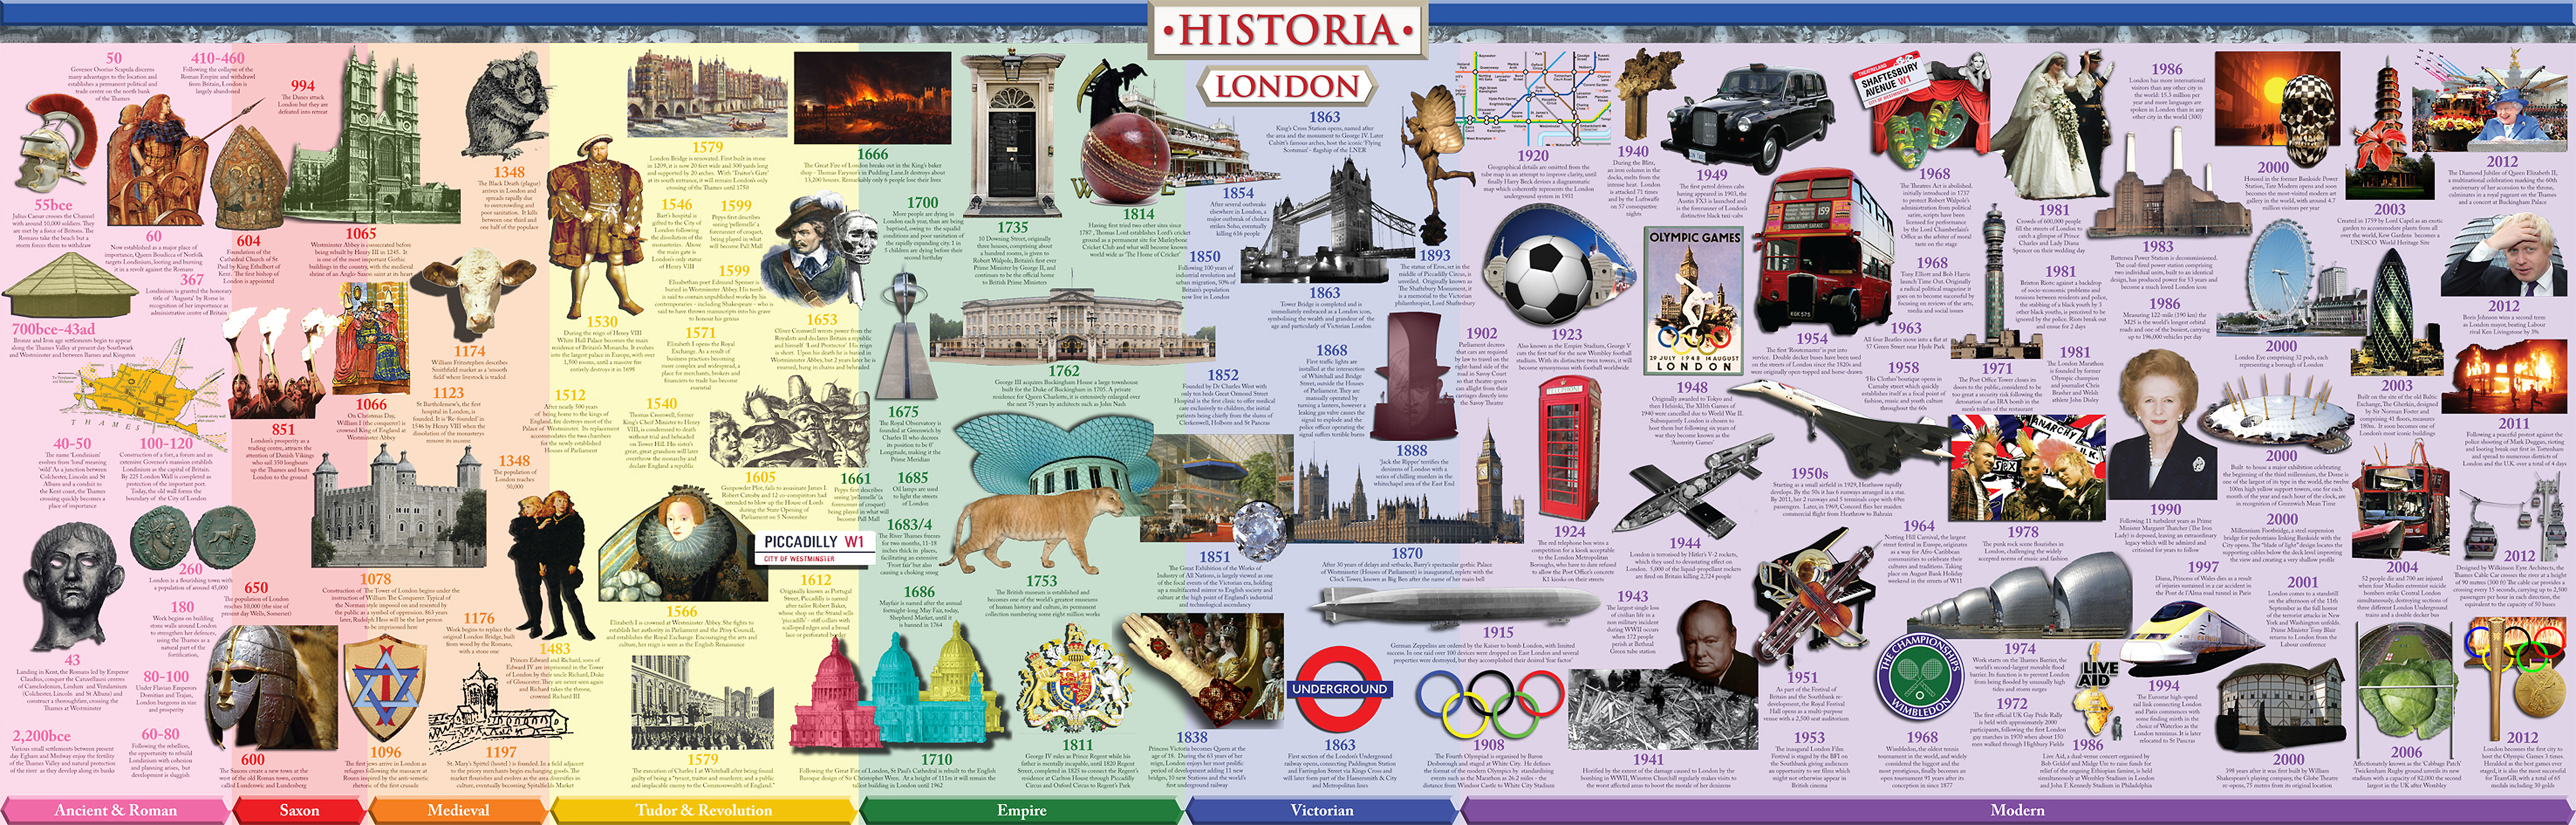 london history timeline historical wall chart london 2k